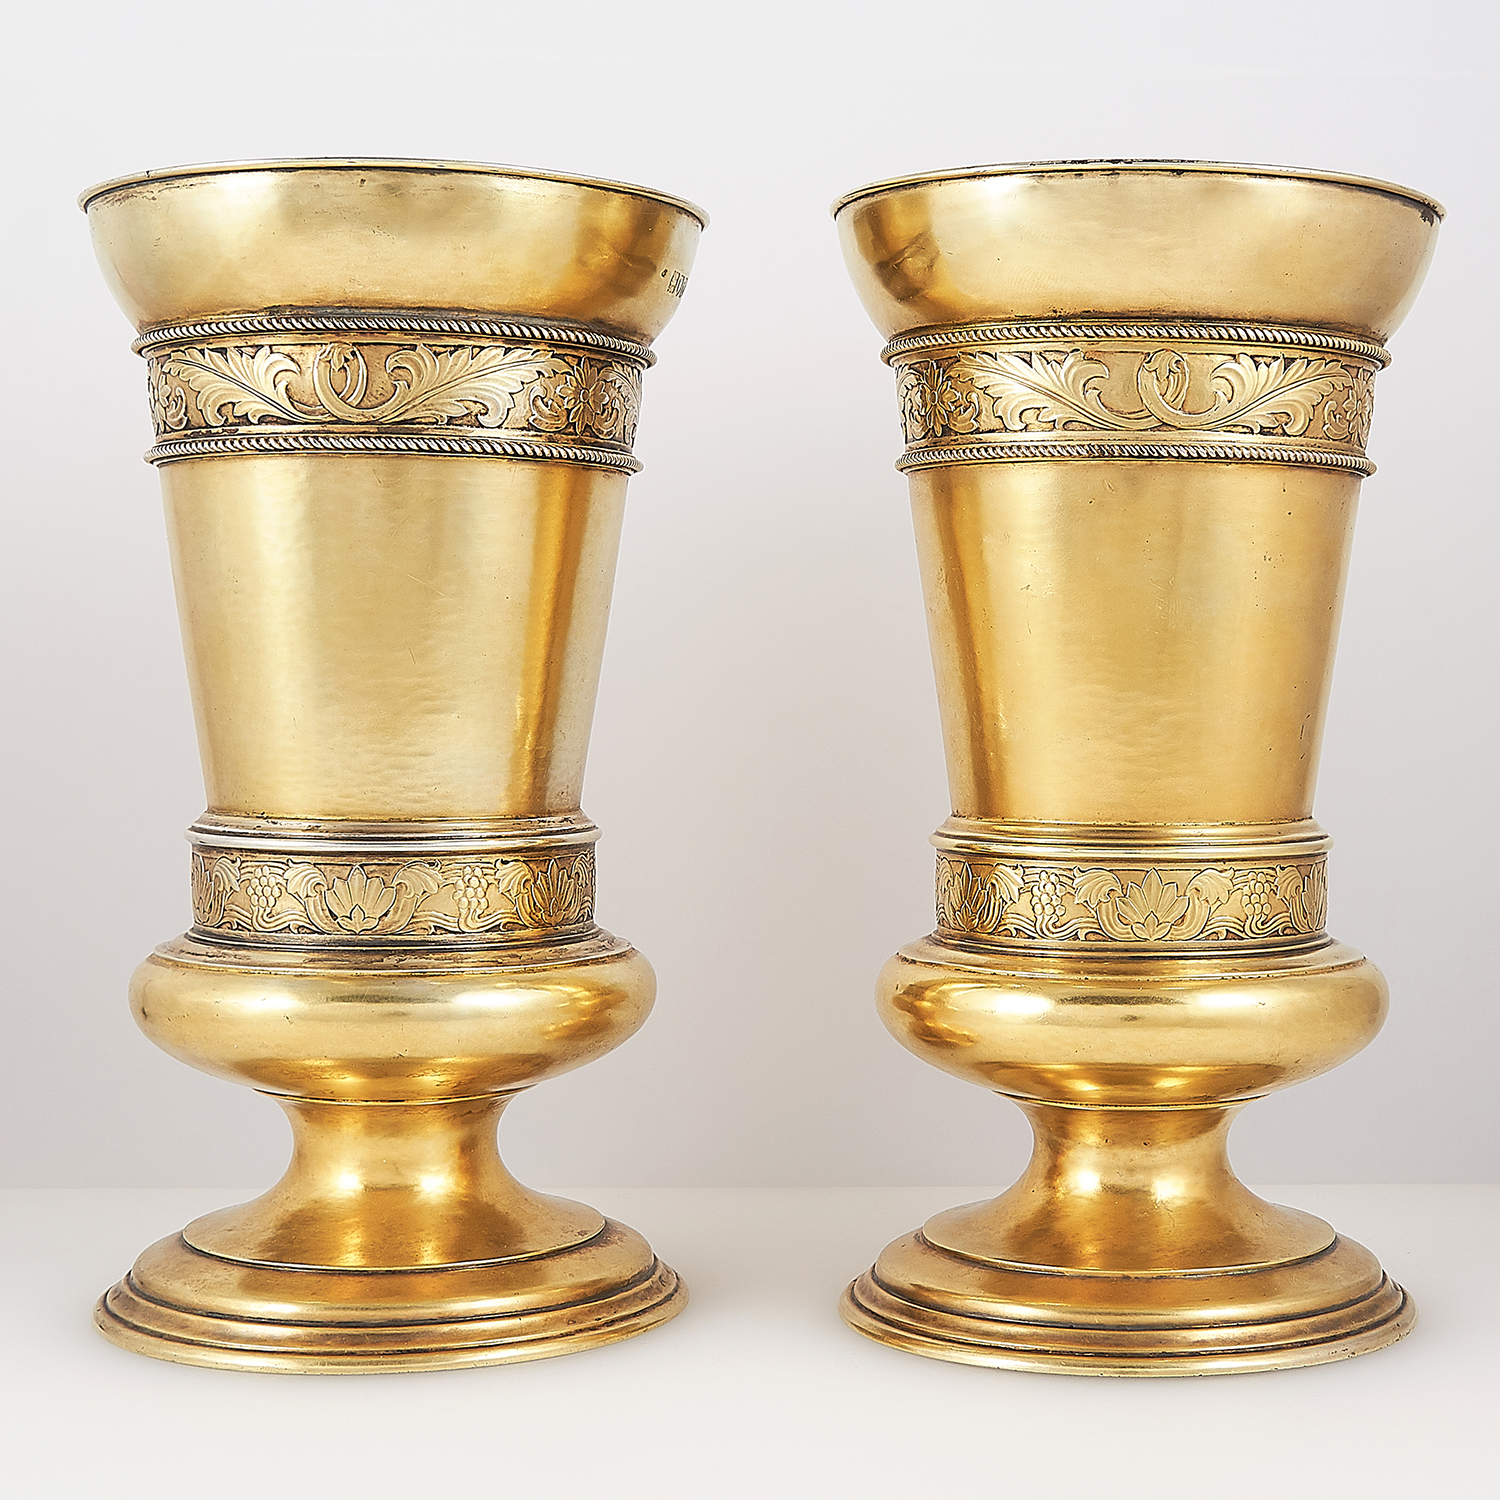 PAIR OF ANTIQUE STERLING SILVER GILT VASES, FREDERICK DENDY WRAY, LONDON 1914 the tapering bodies